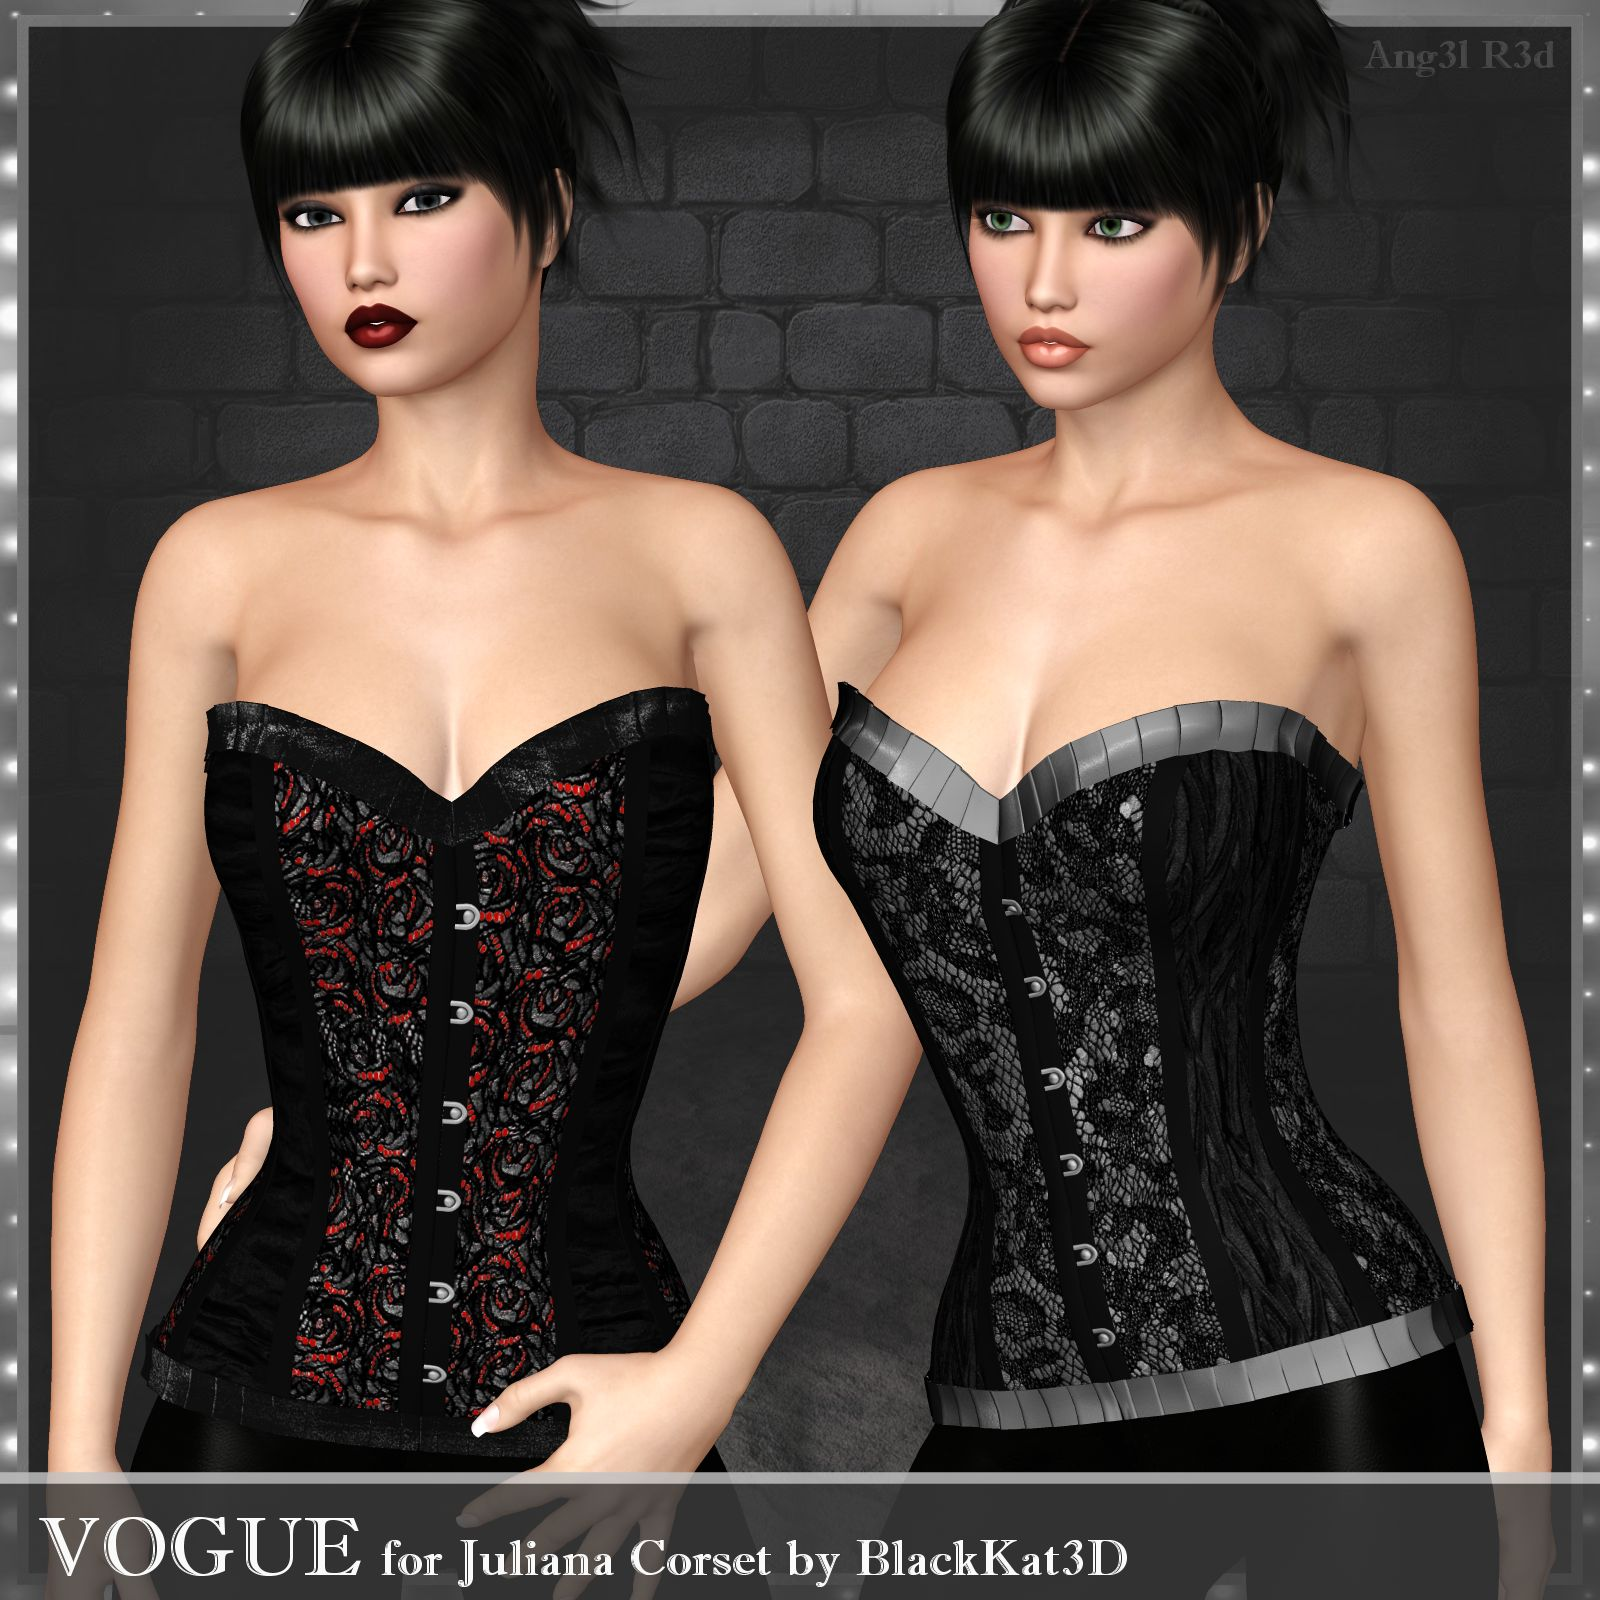 Vogue for Juliana Corset